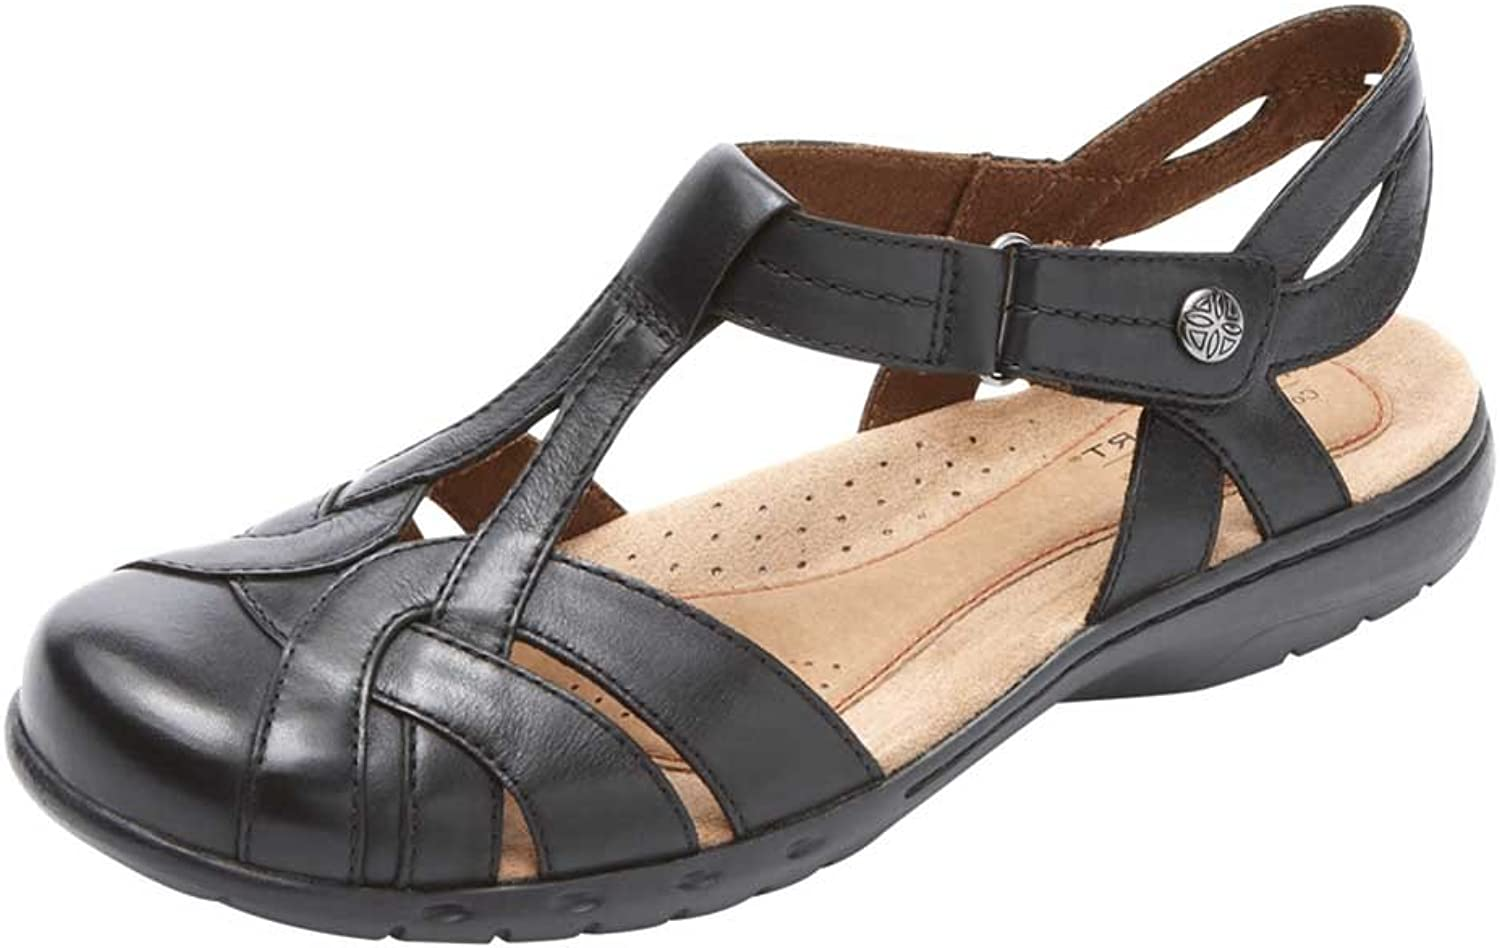 Cobb Hill Collection Penfield T Strap Womens CG9642